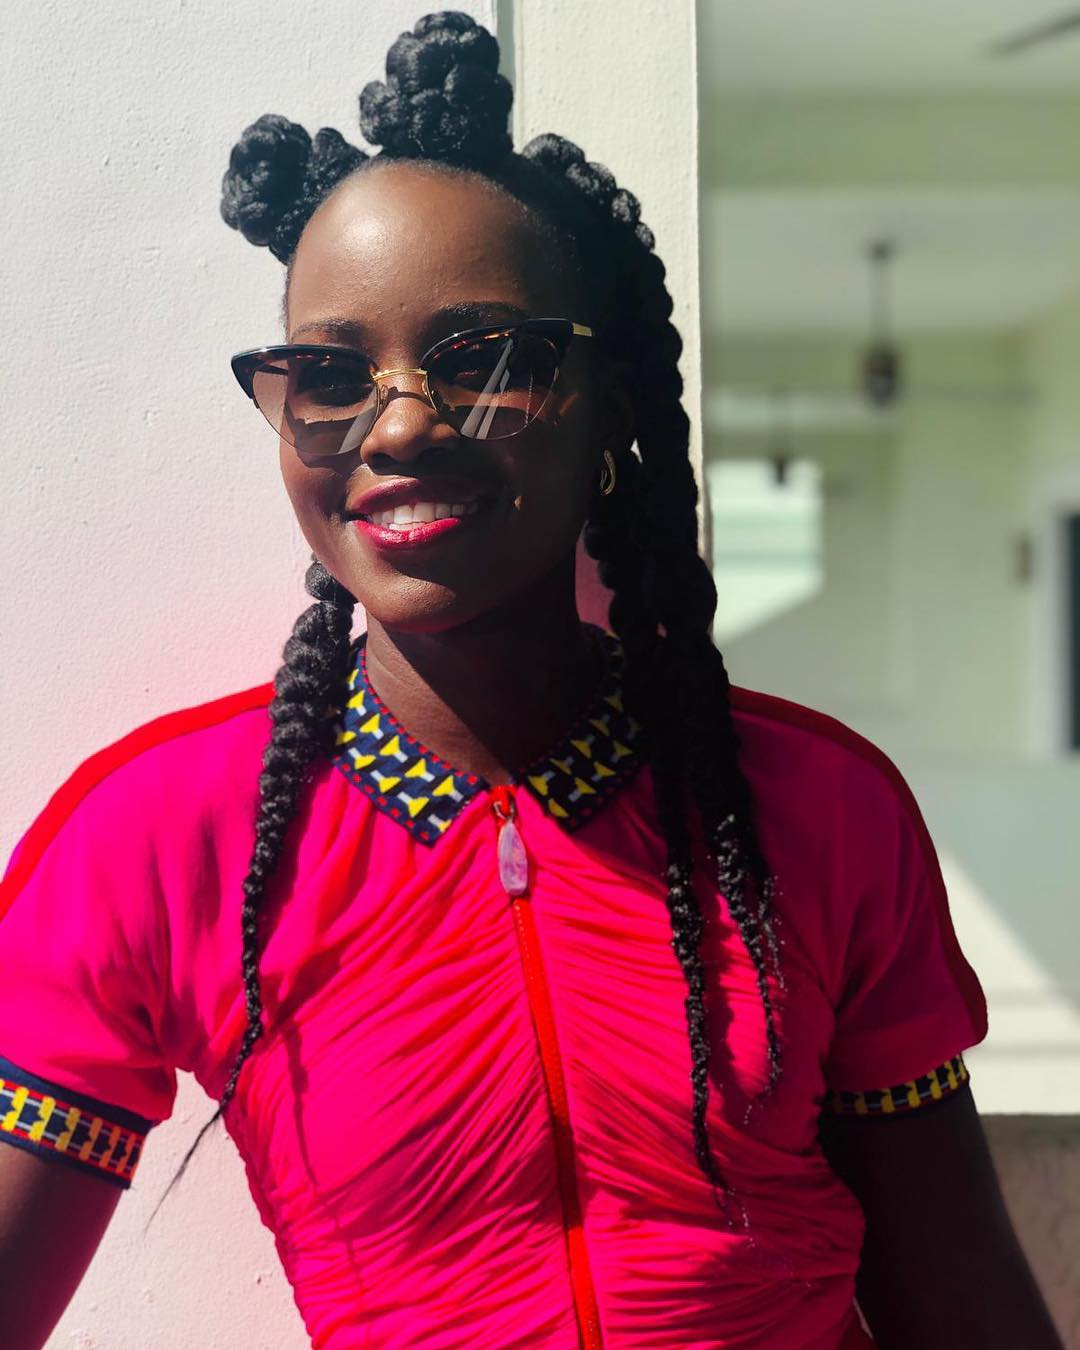 lupita nyongo - Bank otuch! Check out how much Lupita Nyongo spends on sneakers